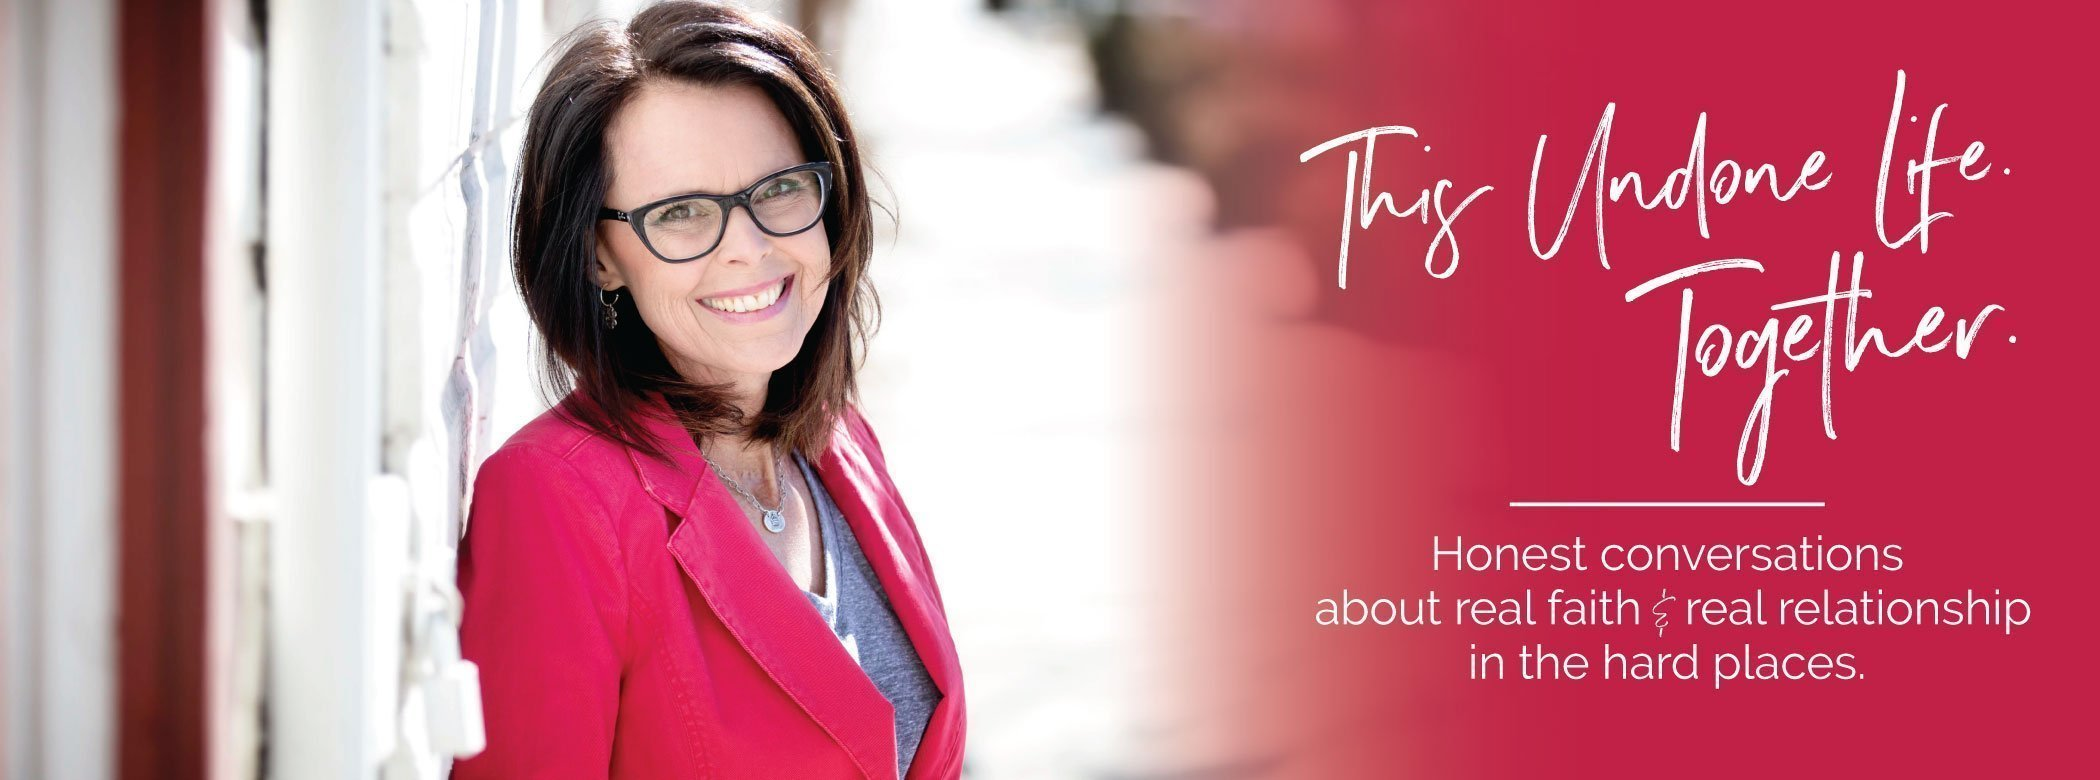 This Undone Life Podcast announcement Michele in Red Jacket